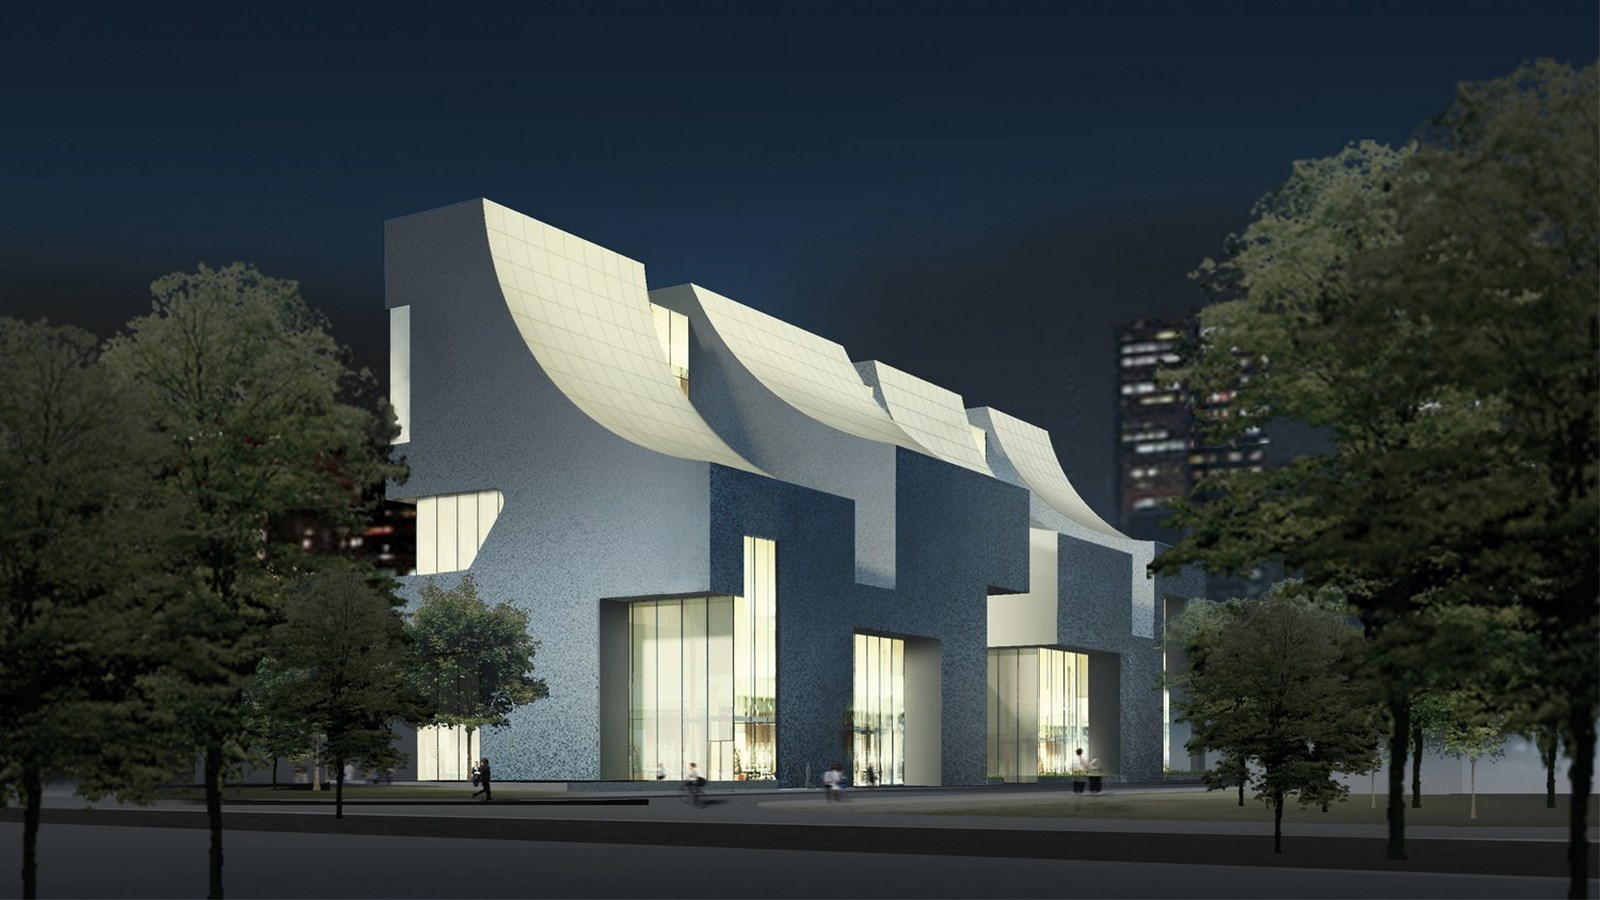 25 Projects by Steven Holl that mark his shift from Typology to Phenomenology - CIFI, Beijing